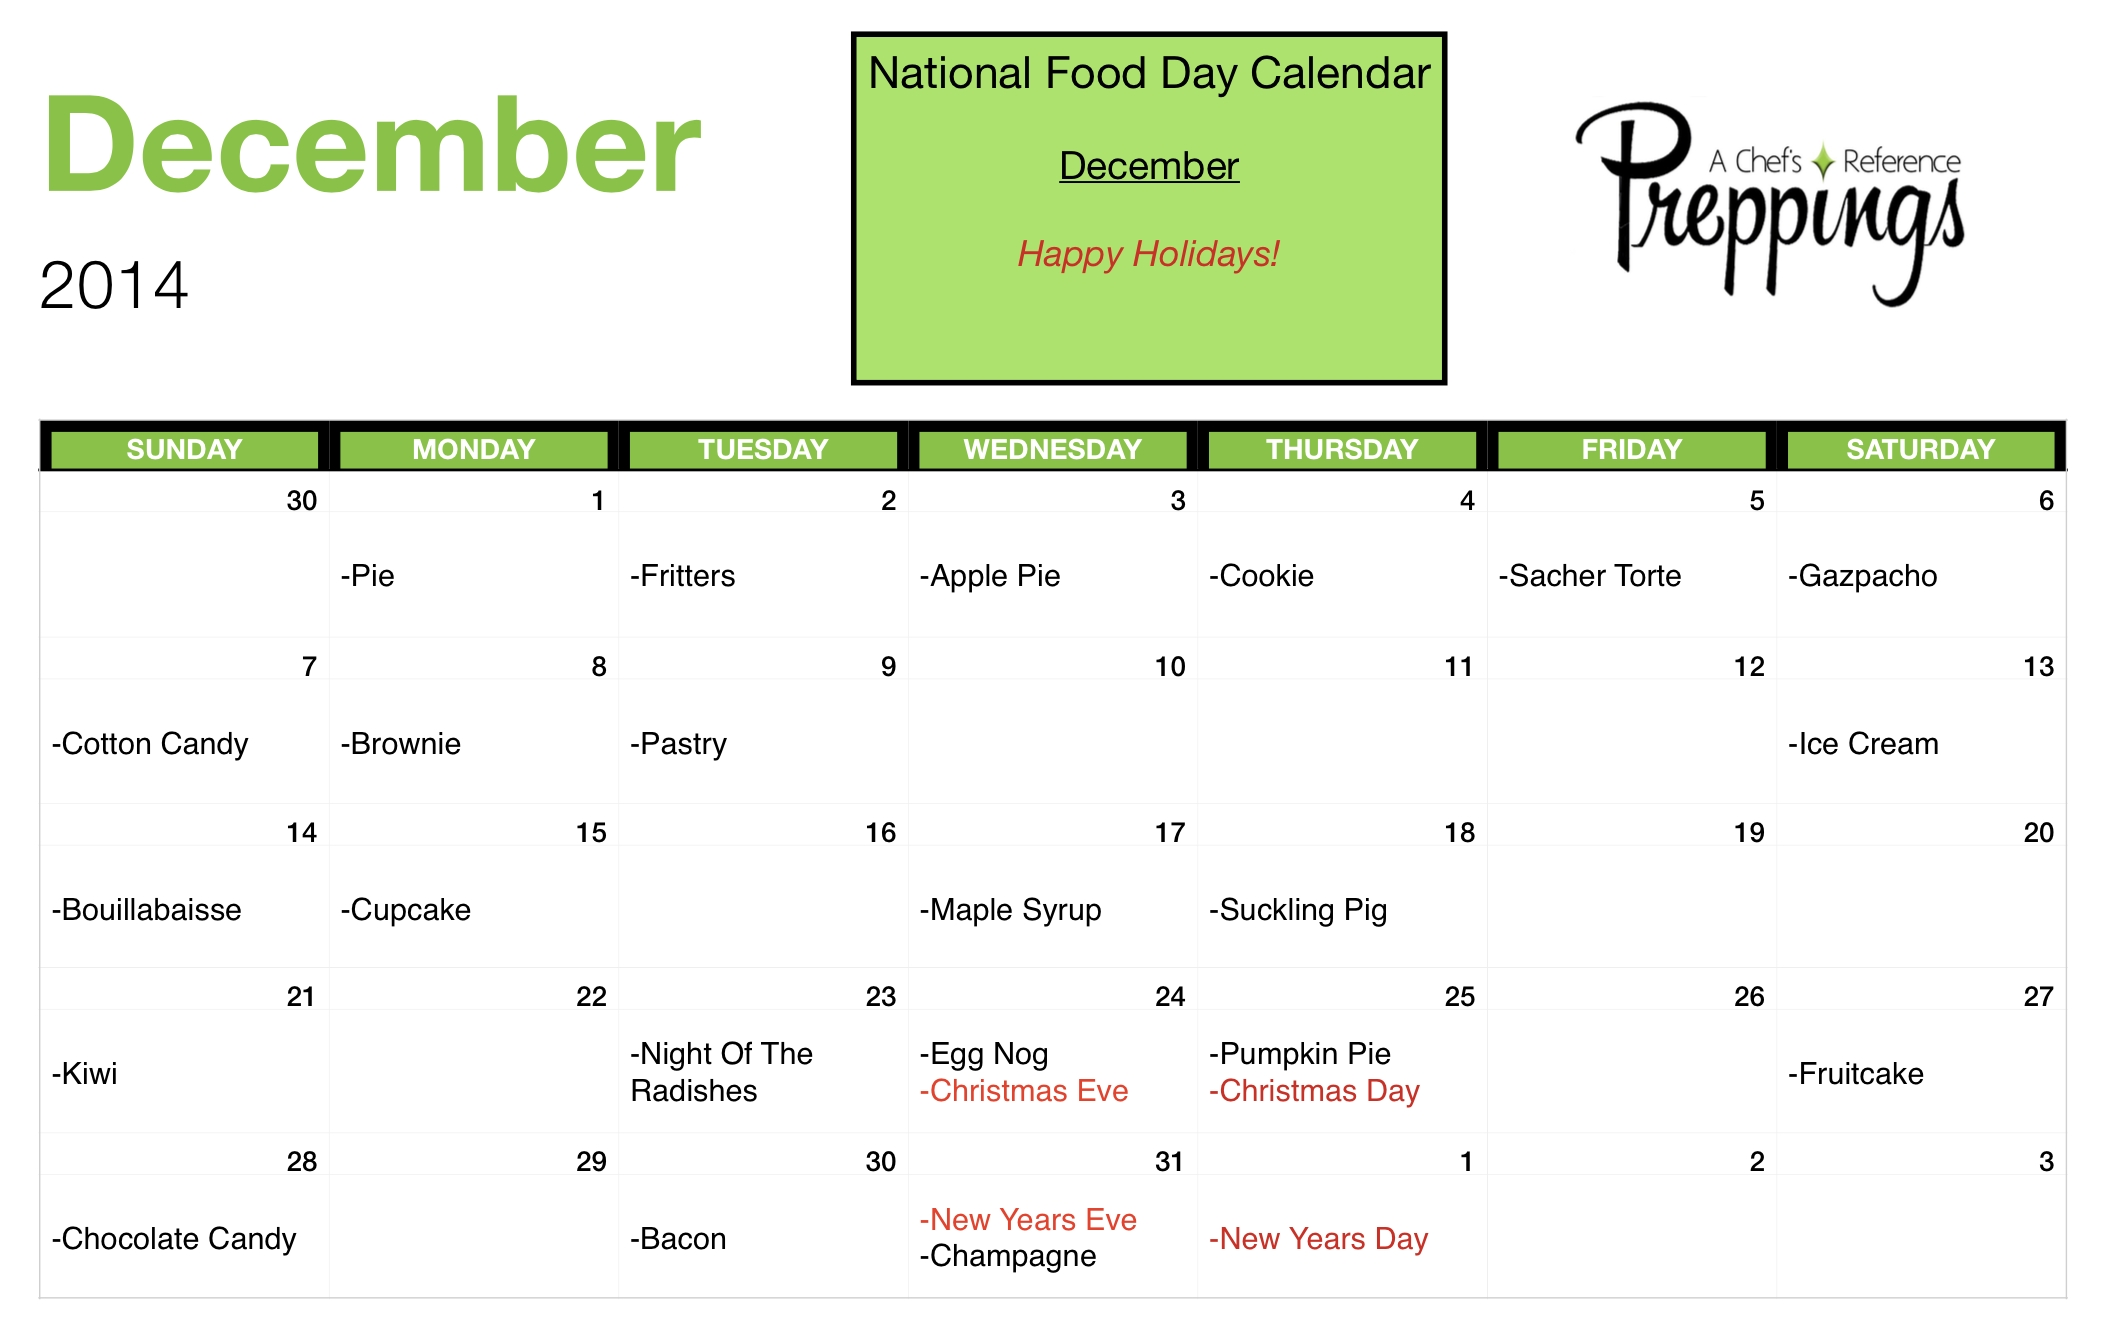 National Food Days- December 2014 - Preppings with Calendar Of National Food Days